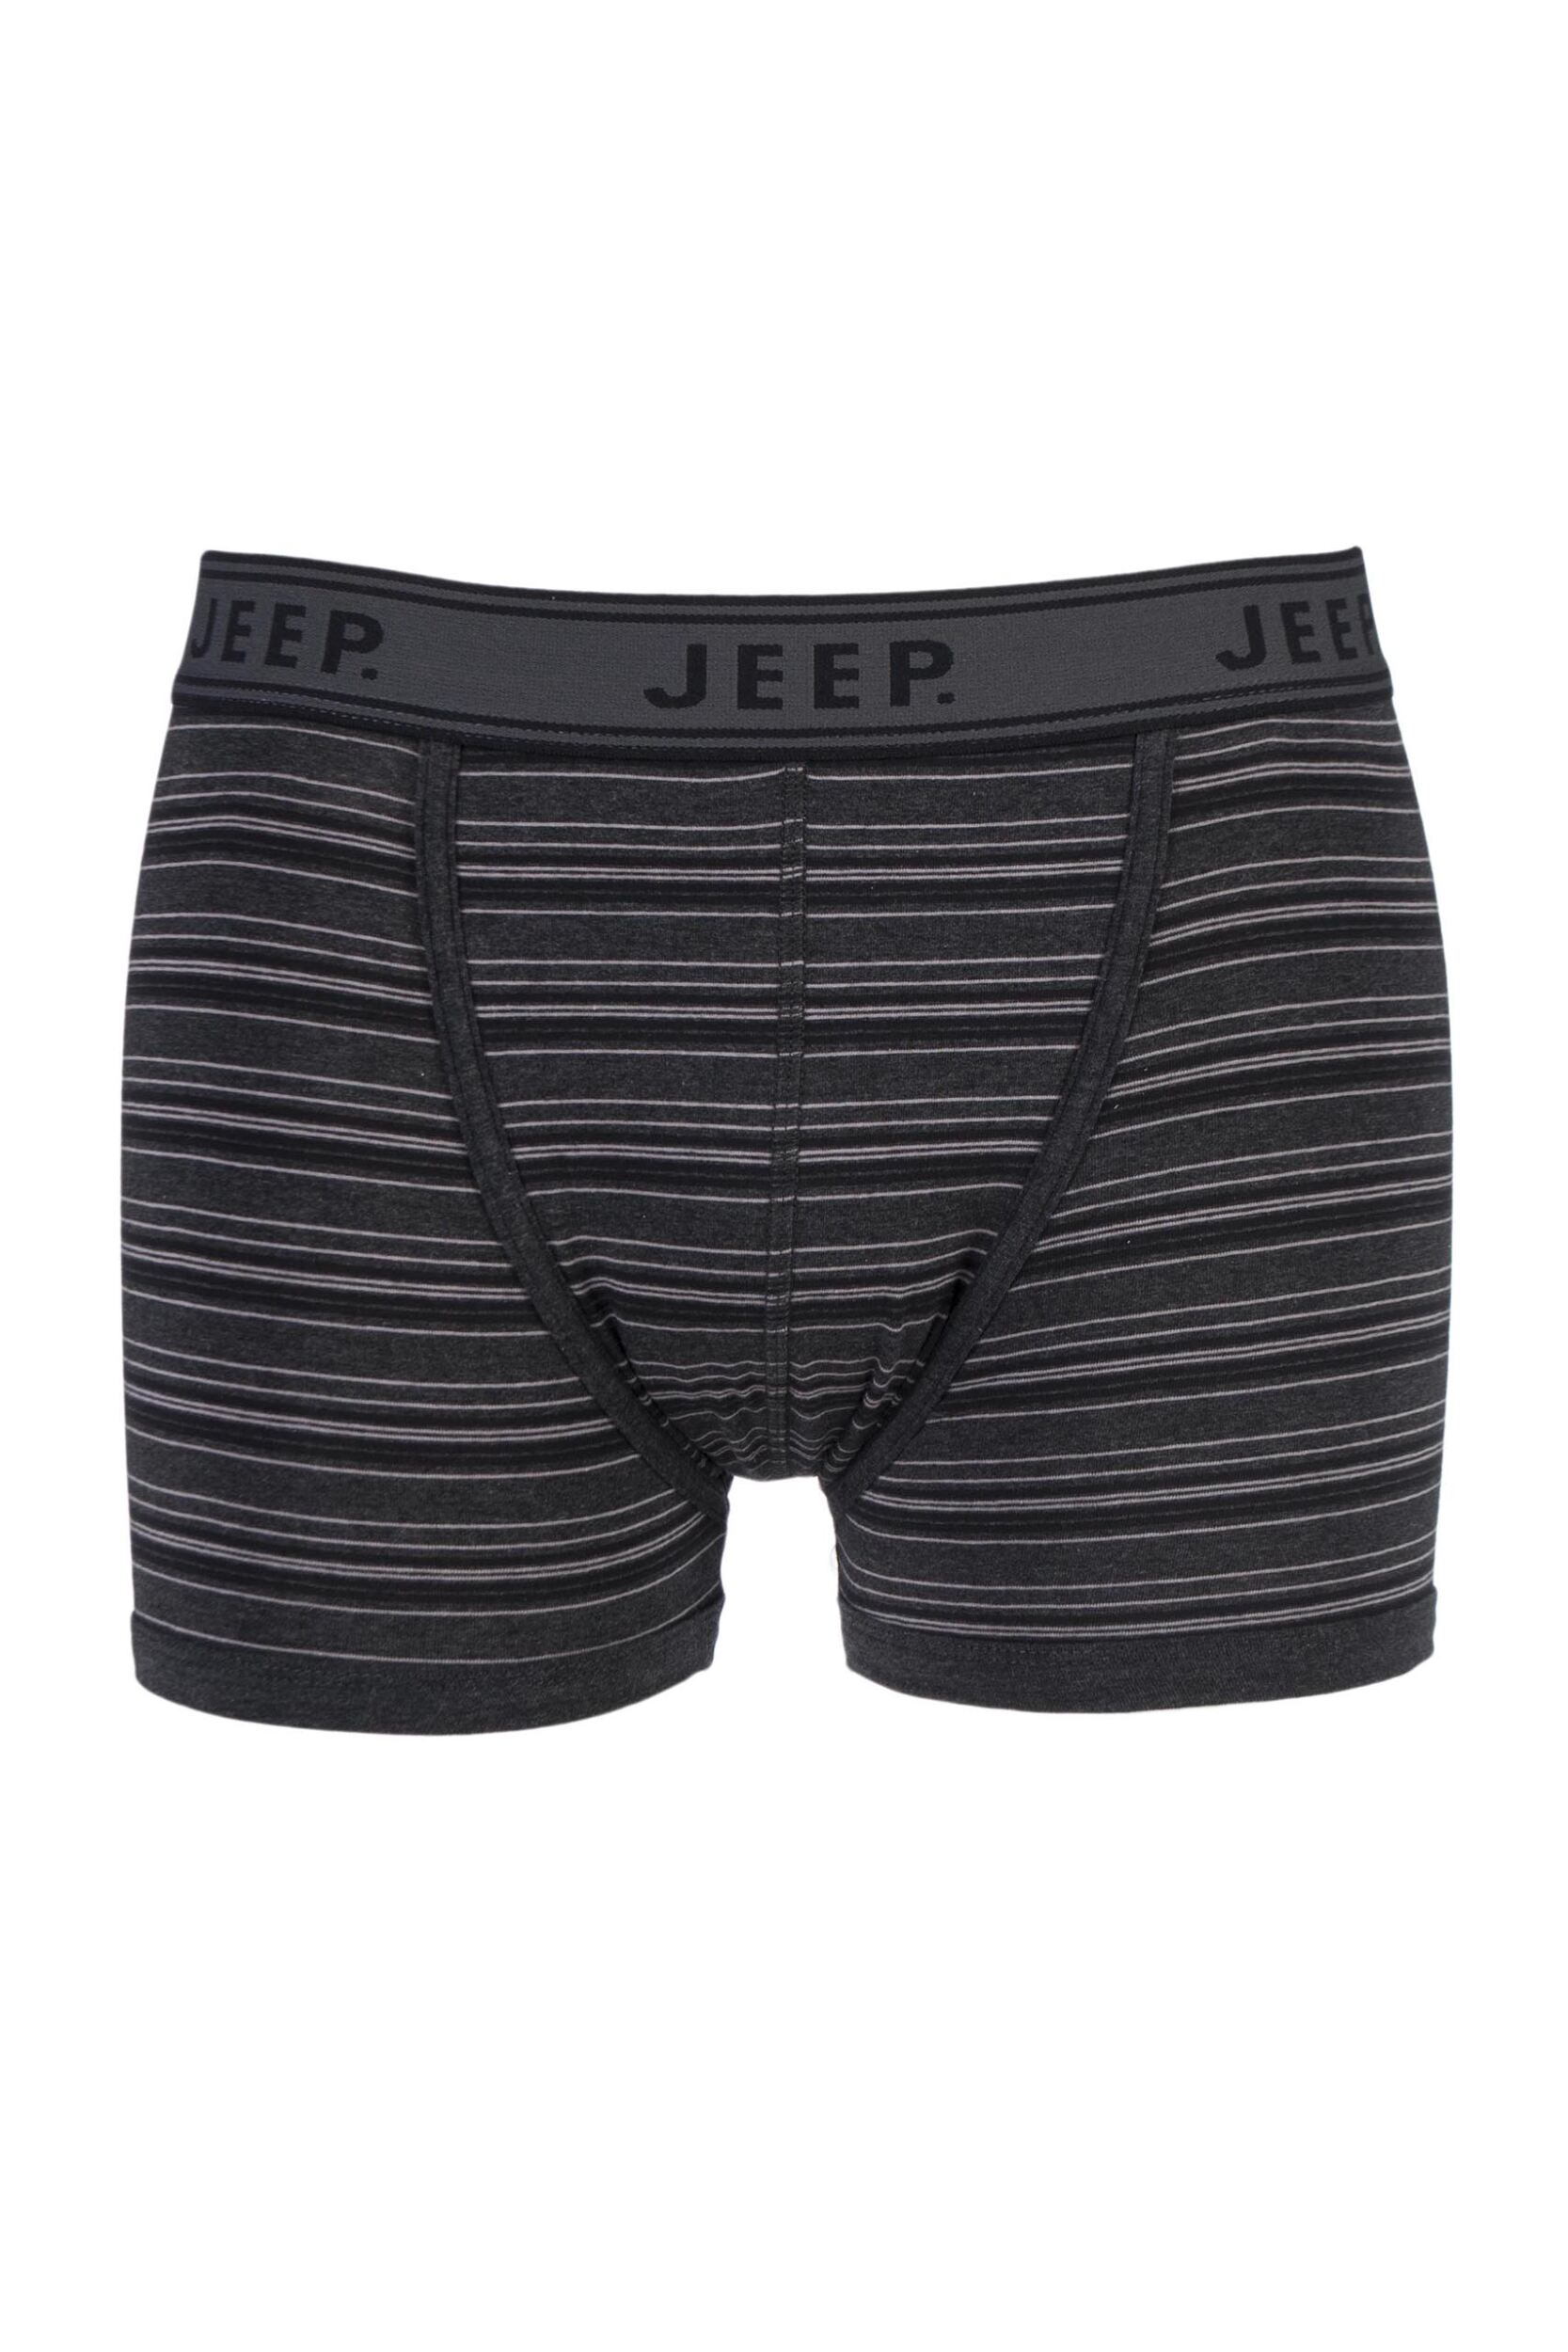 Mens 1 Pair Jeep Spirit Cotton Pin Stripe Trunks